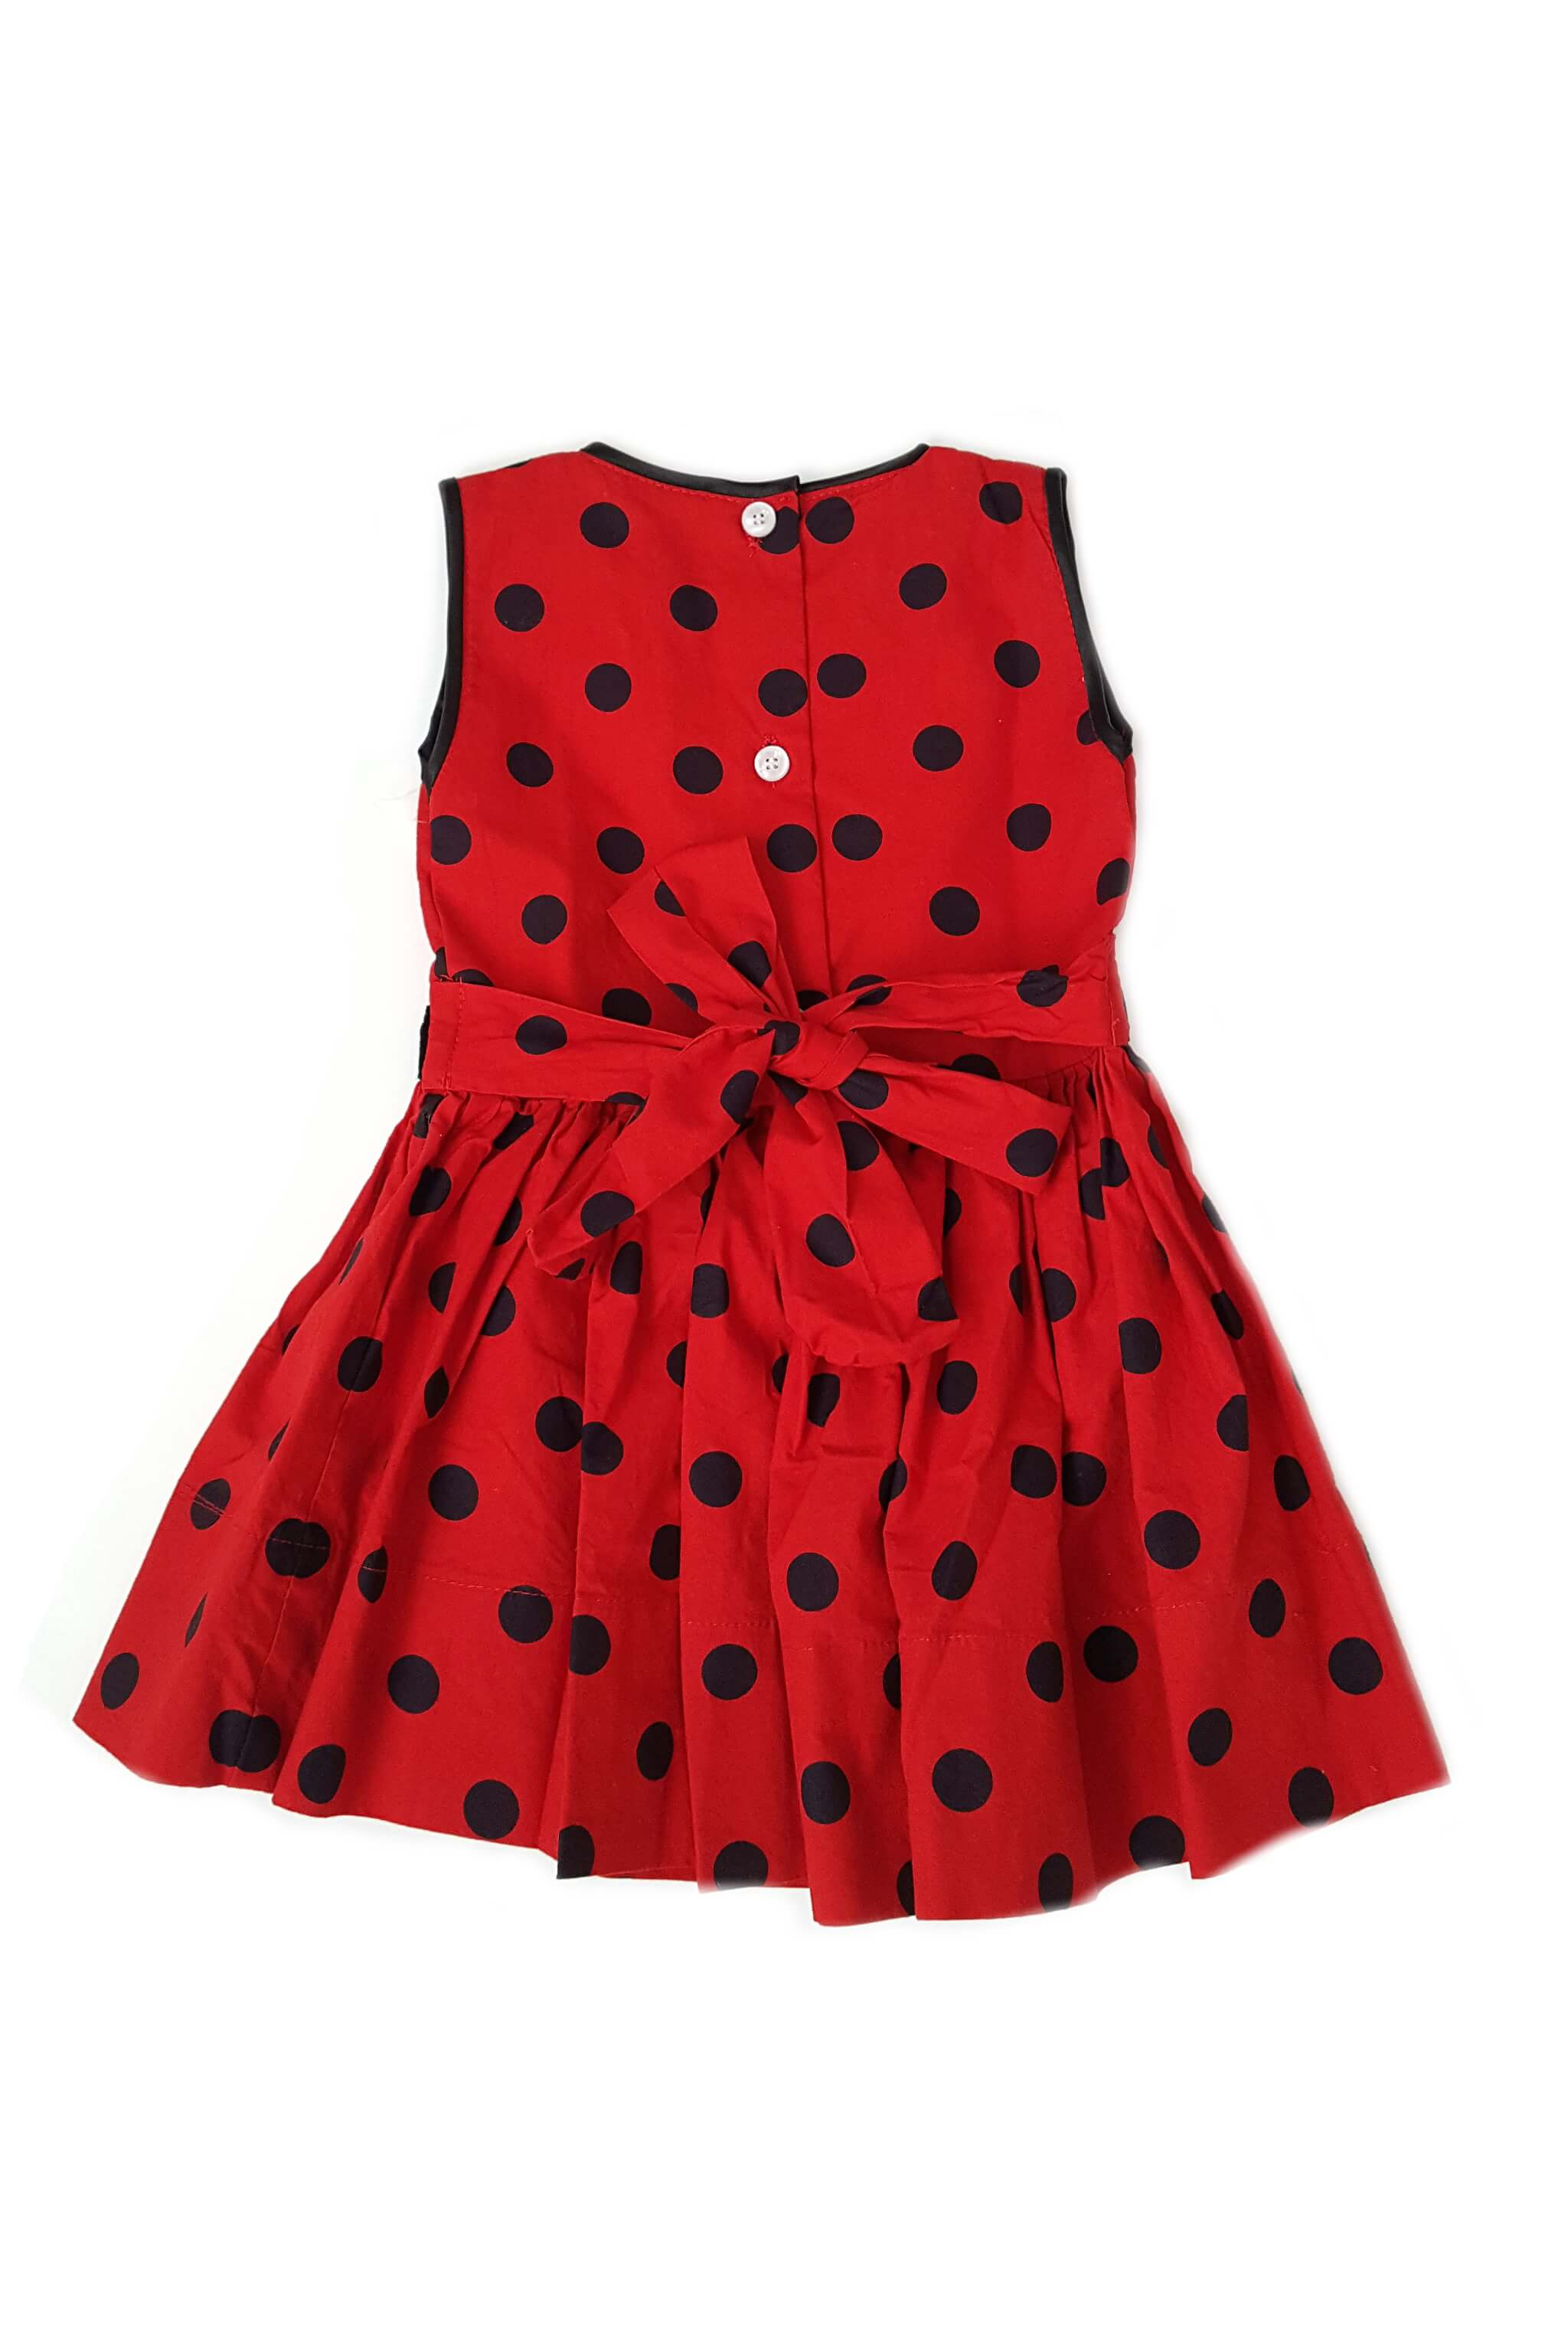 Back of Gwen dress from The Open Road with black and red polka dot print and button back with sash